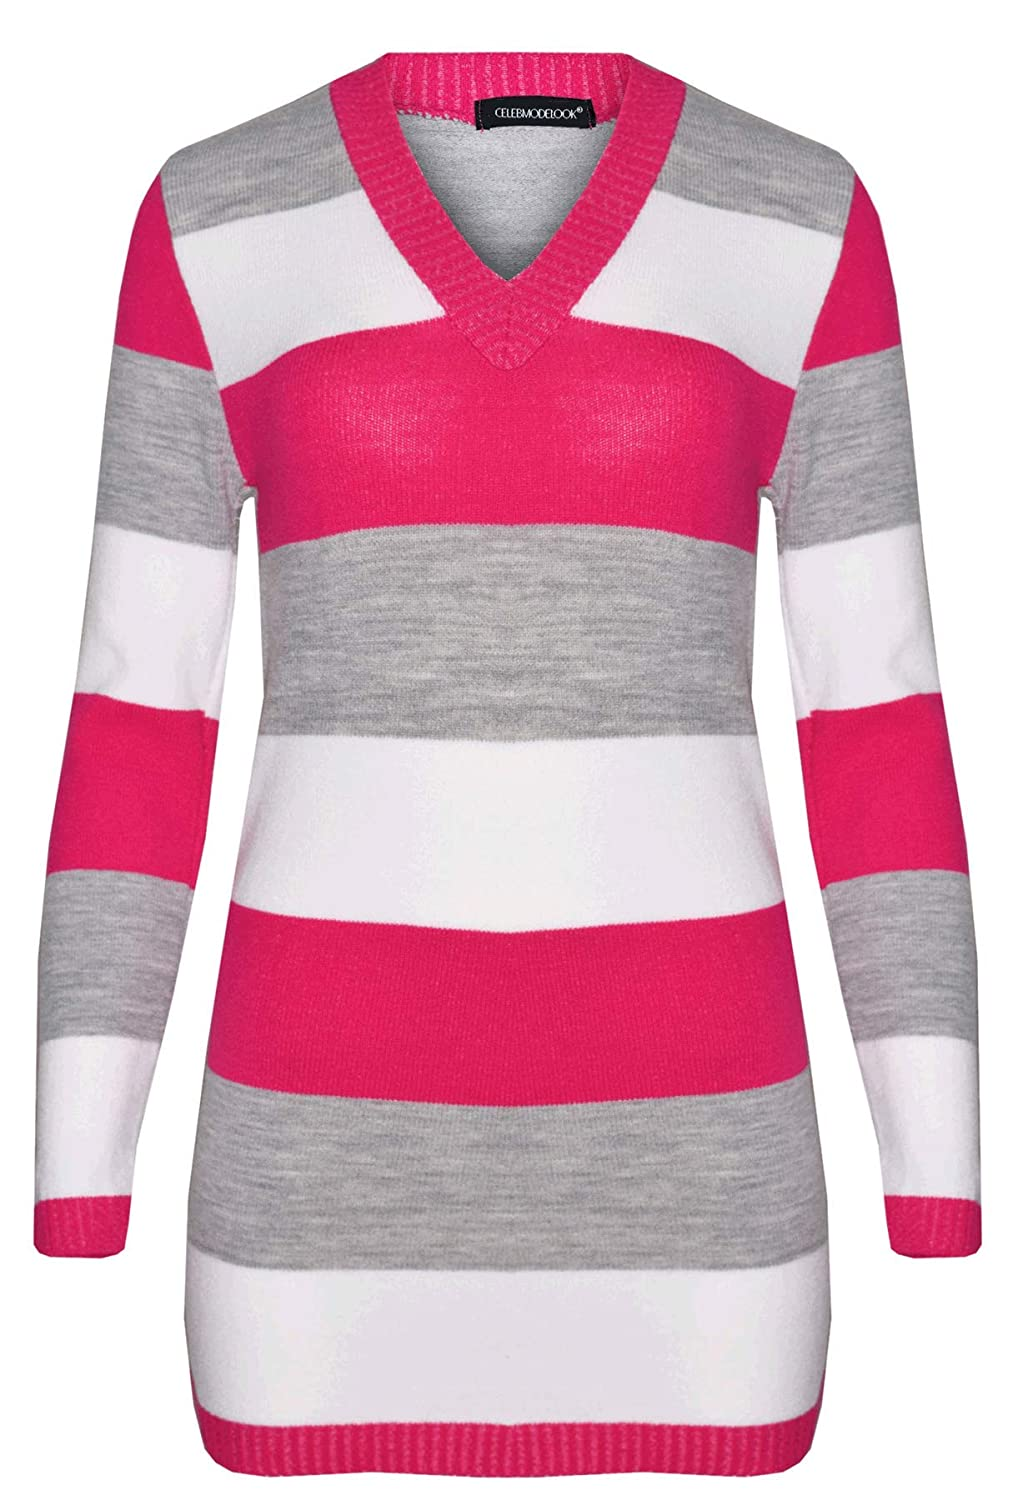 CELEB LOOK N38 New Womens Celebmodelook Ladies Full Length Striped V-Neck Knitted Jumper Dress